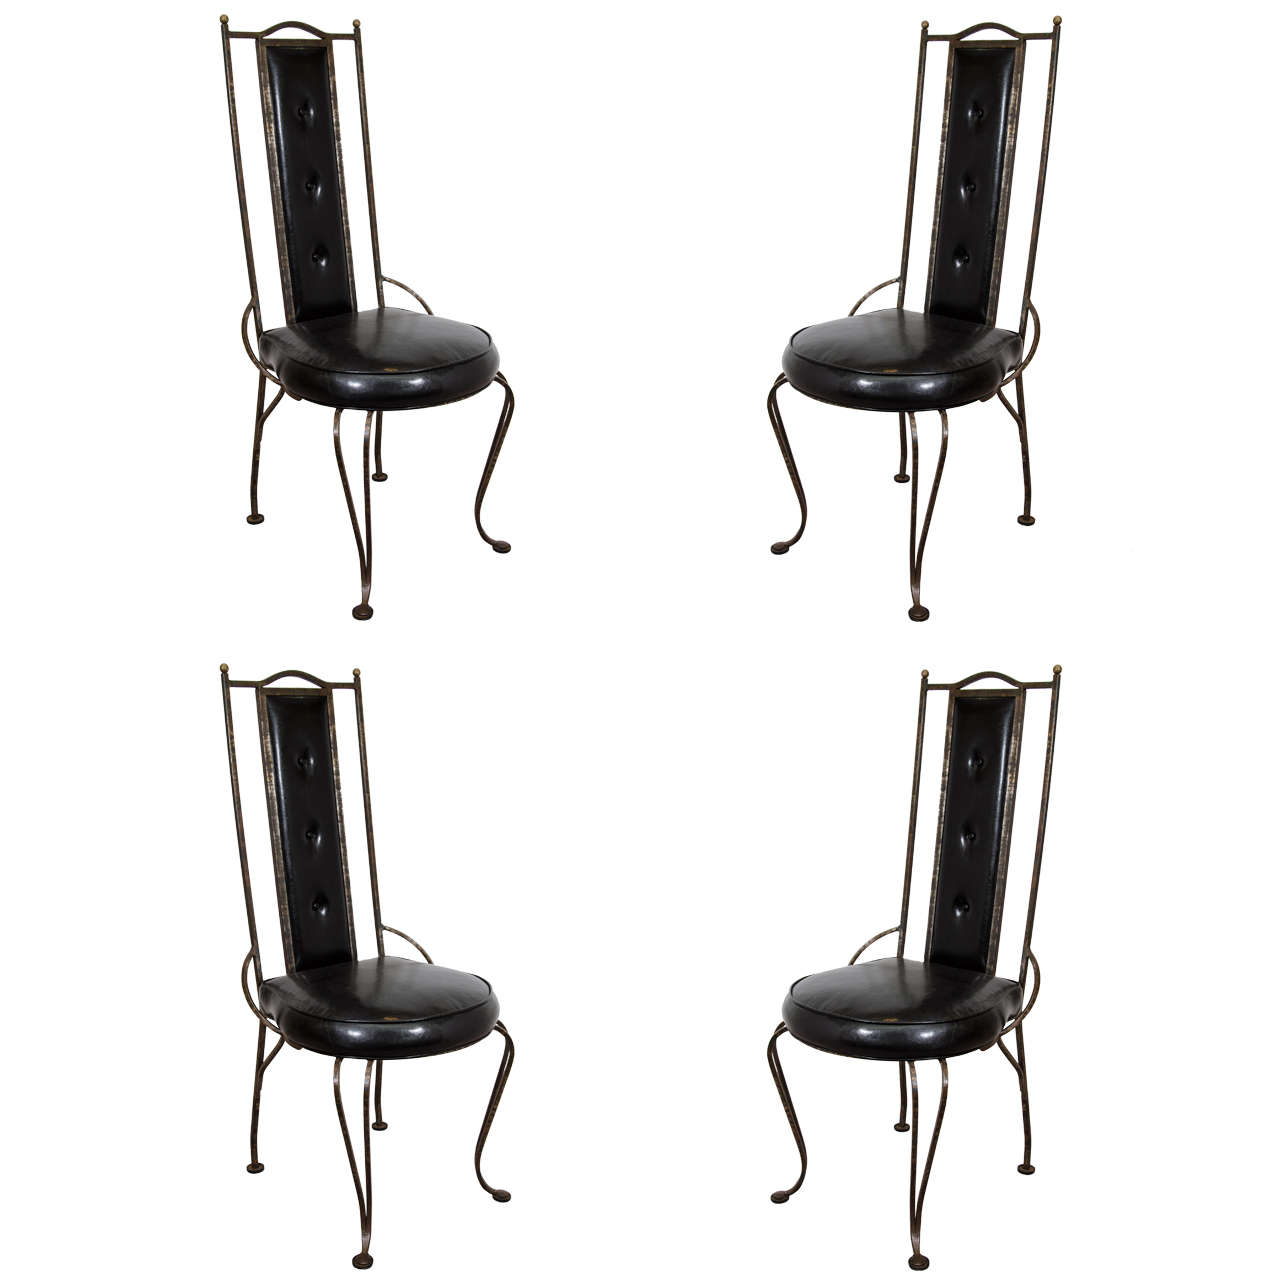 wrought iron dining chairs wedding chair covers pontefract a set of four mid century at 1stdibs for sale